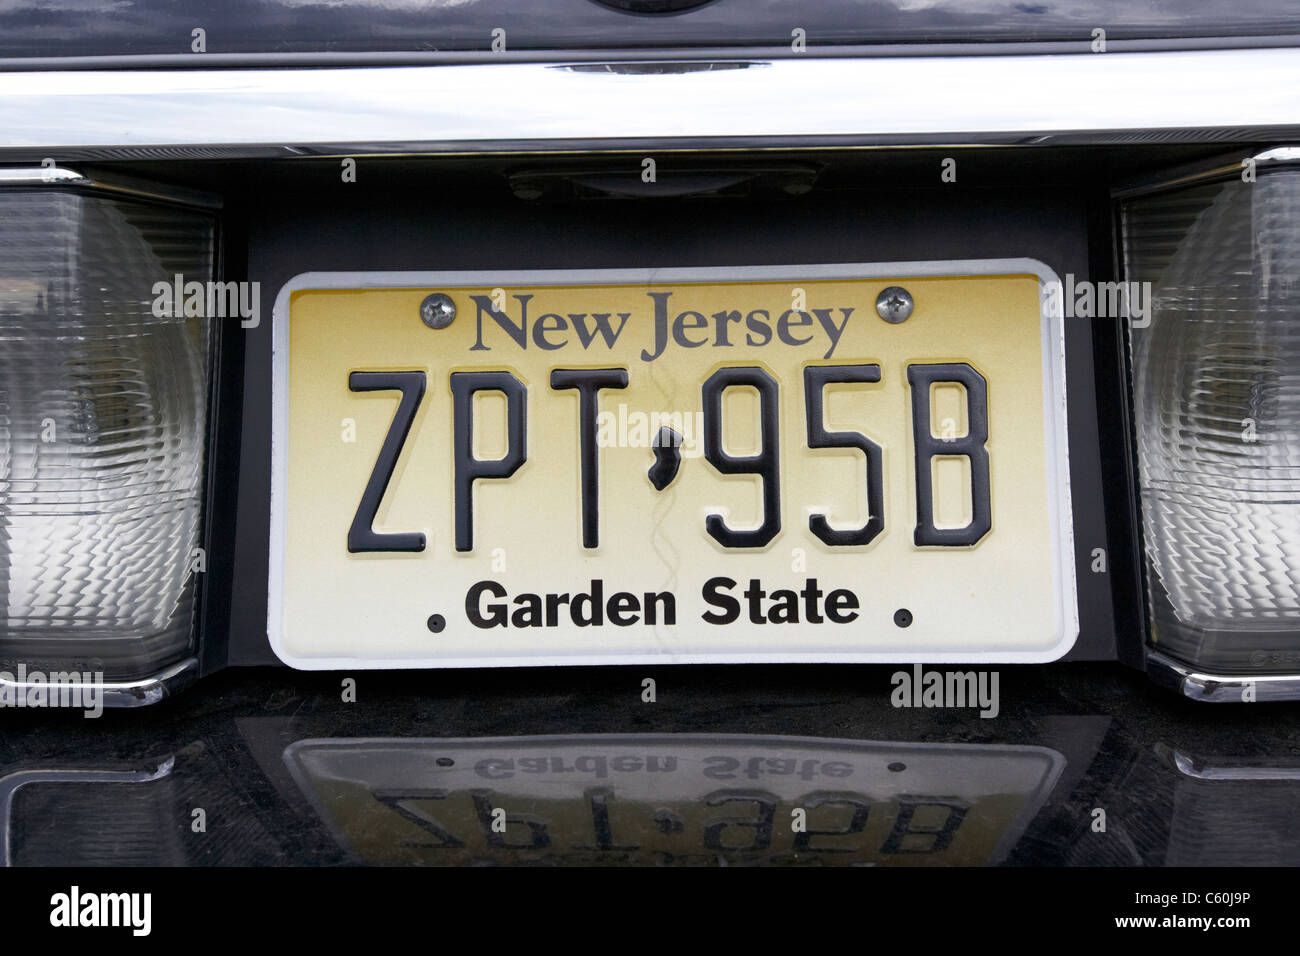 new jersey garden state vehicle license plate state usa Stock Photo ...